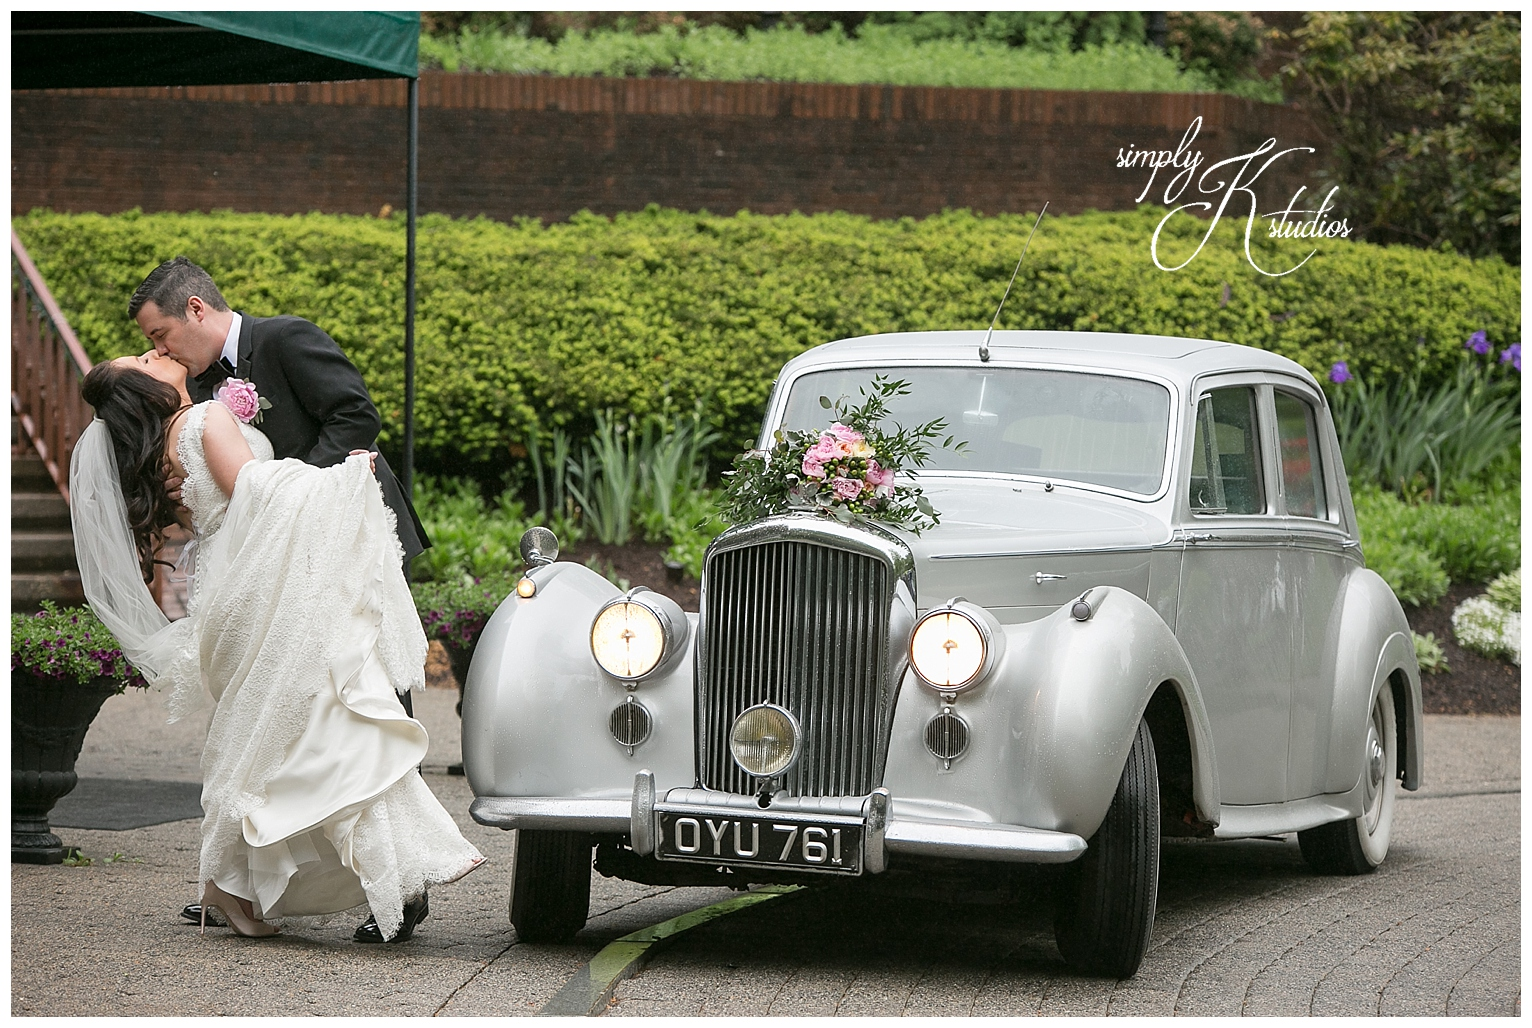 Vintage Cars for a Wedding near Hartford CT.jpg